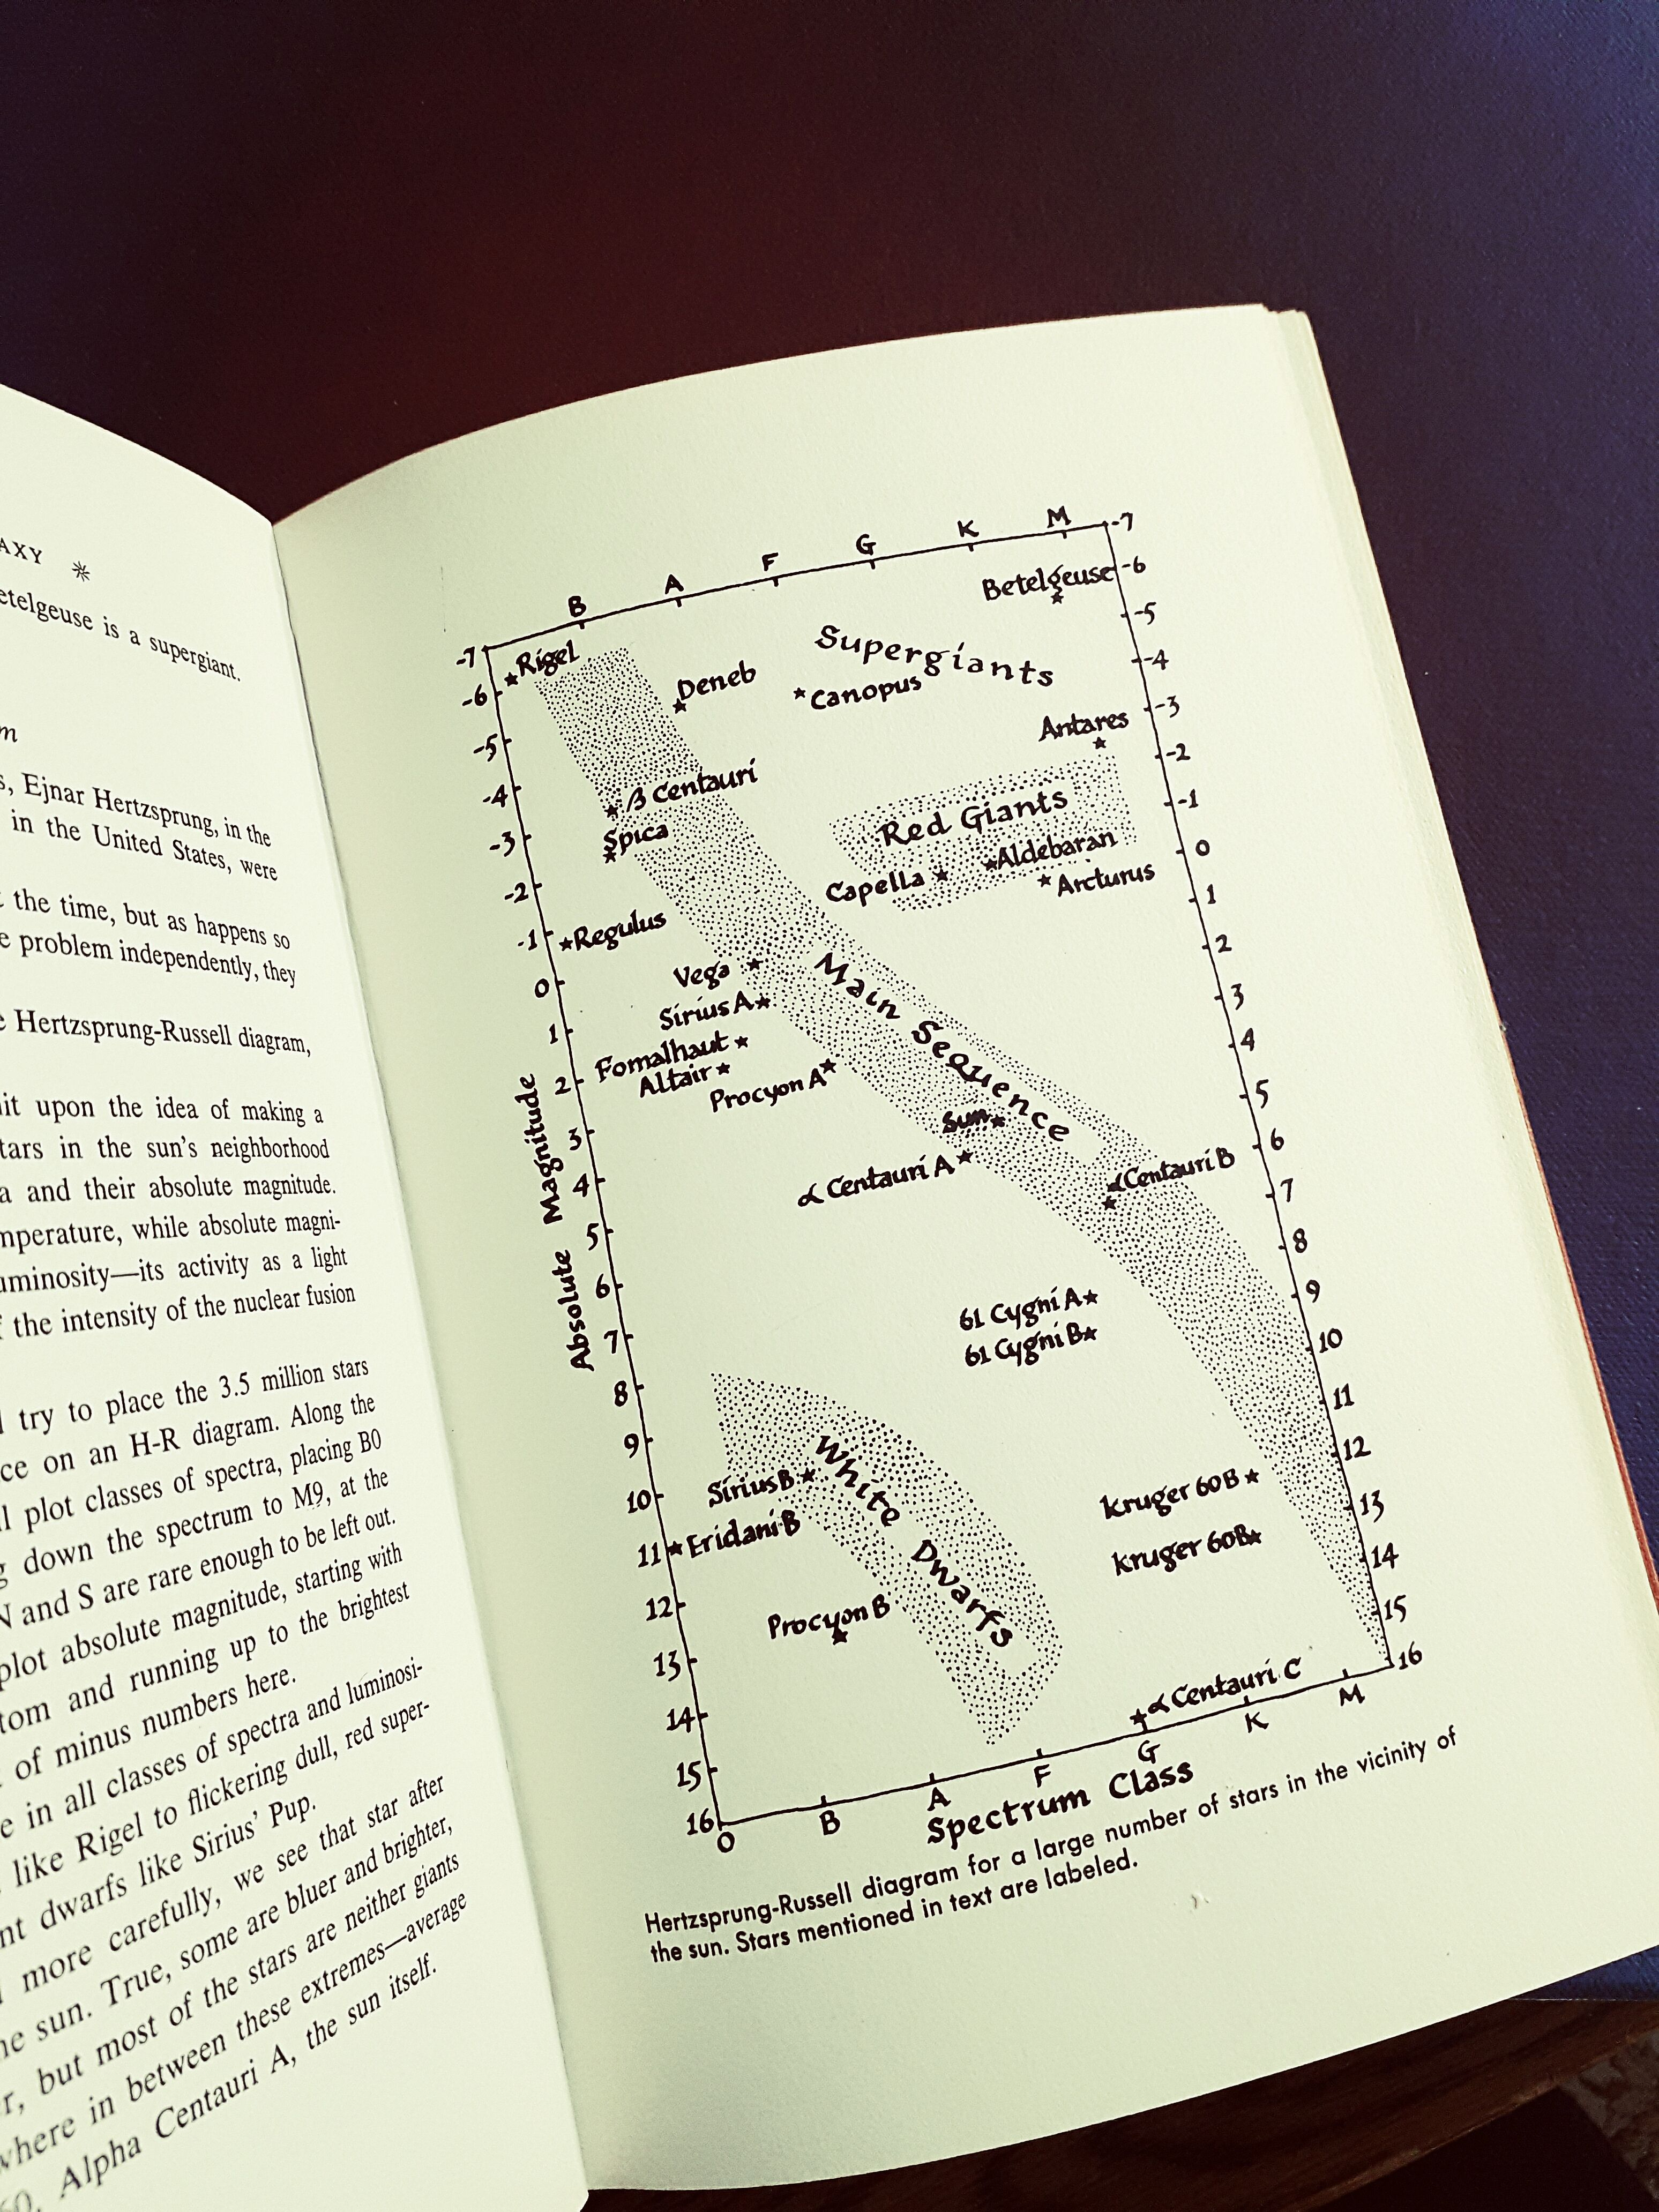 Today i found a lovely version of the h r diagram in an old today i found a lovely version of the h r diagram in an old astronomy book this and the star evolution it represents is the basis of my sky painting pooptronica Gallery